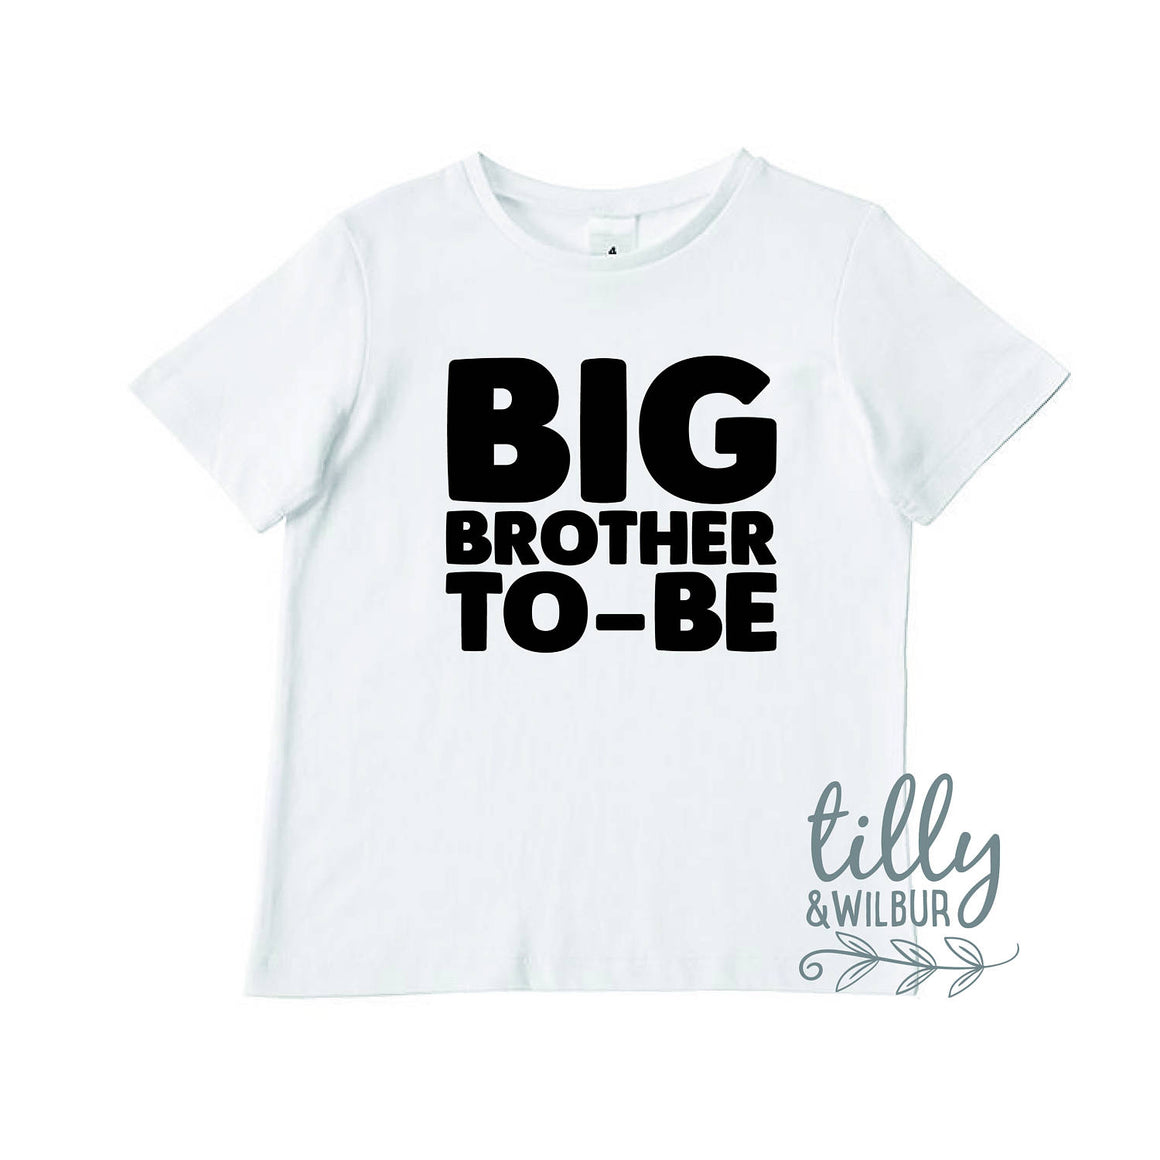 Big Brother To-Be Boys Tee, Big Brother Announcement Shirt, Big Bro Gift, Pregnancy Announcement Shirt, Reveal Outfit, Sibling TShirt, White